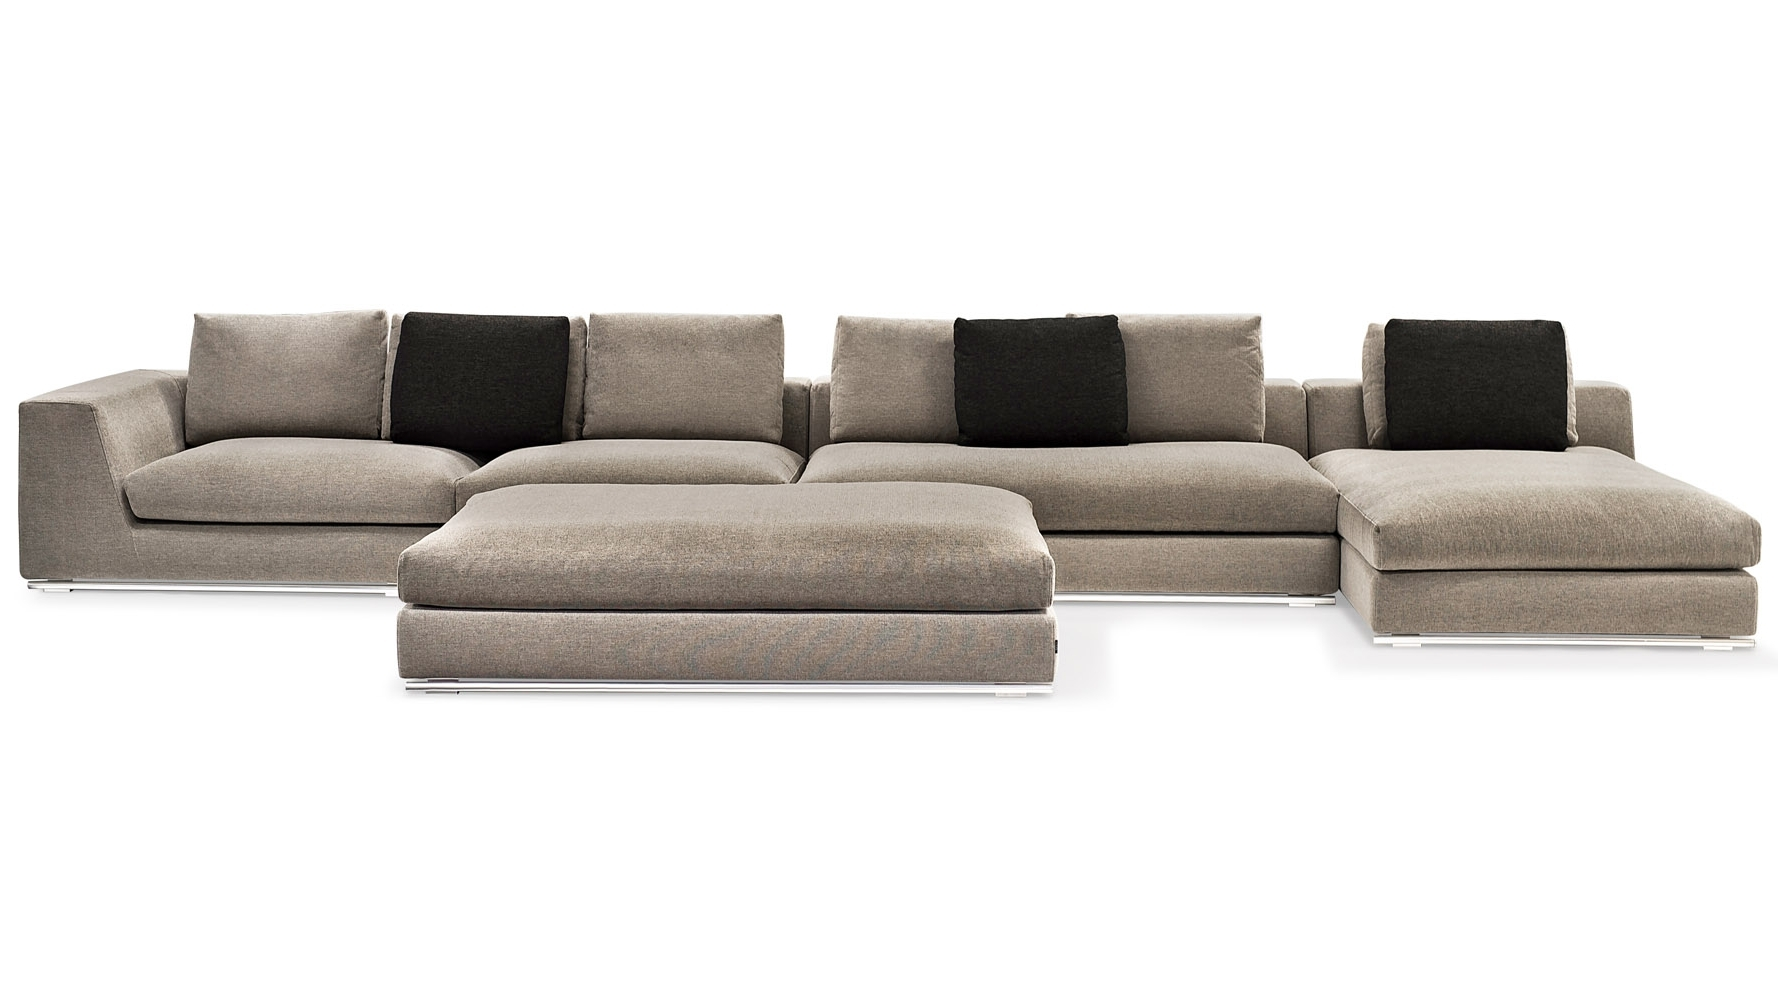 Well Known Armless Sectional Sofas Regarding Comodo Sectional Sofa With Ottoman – Grey (View 11 of 15)